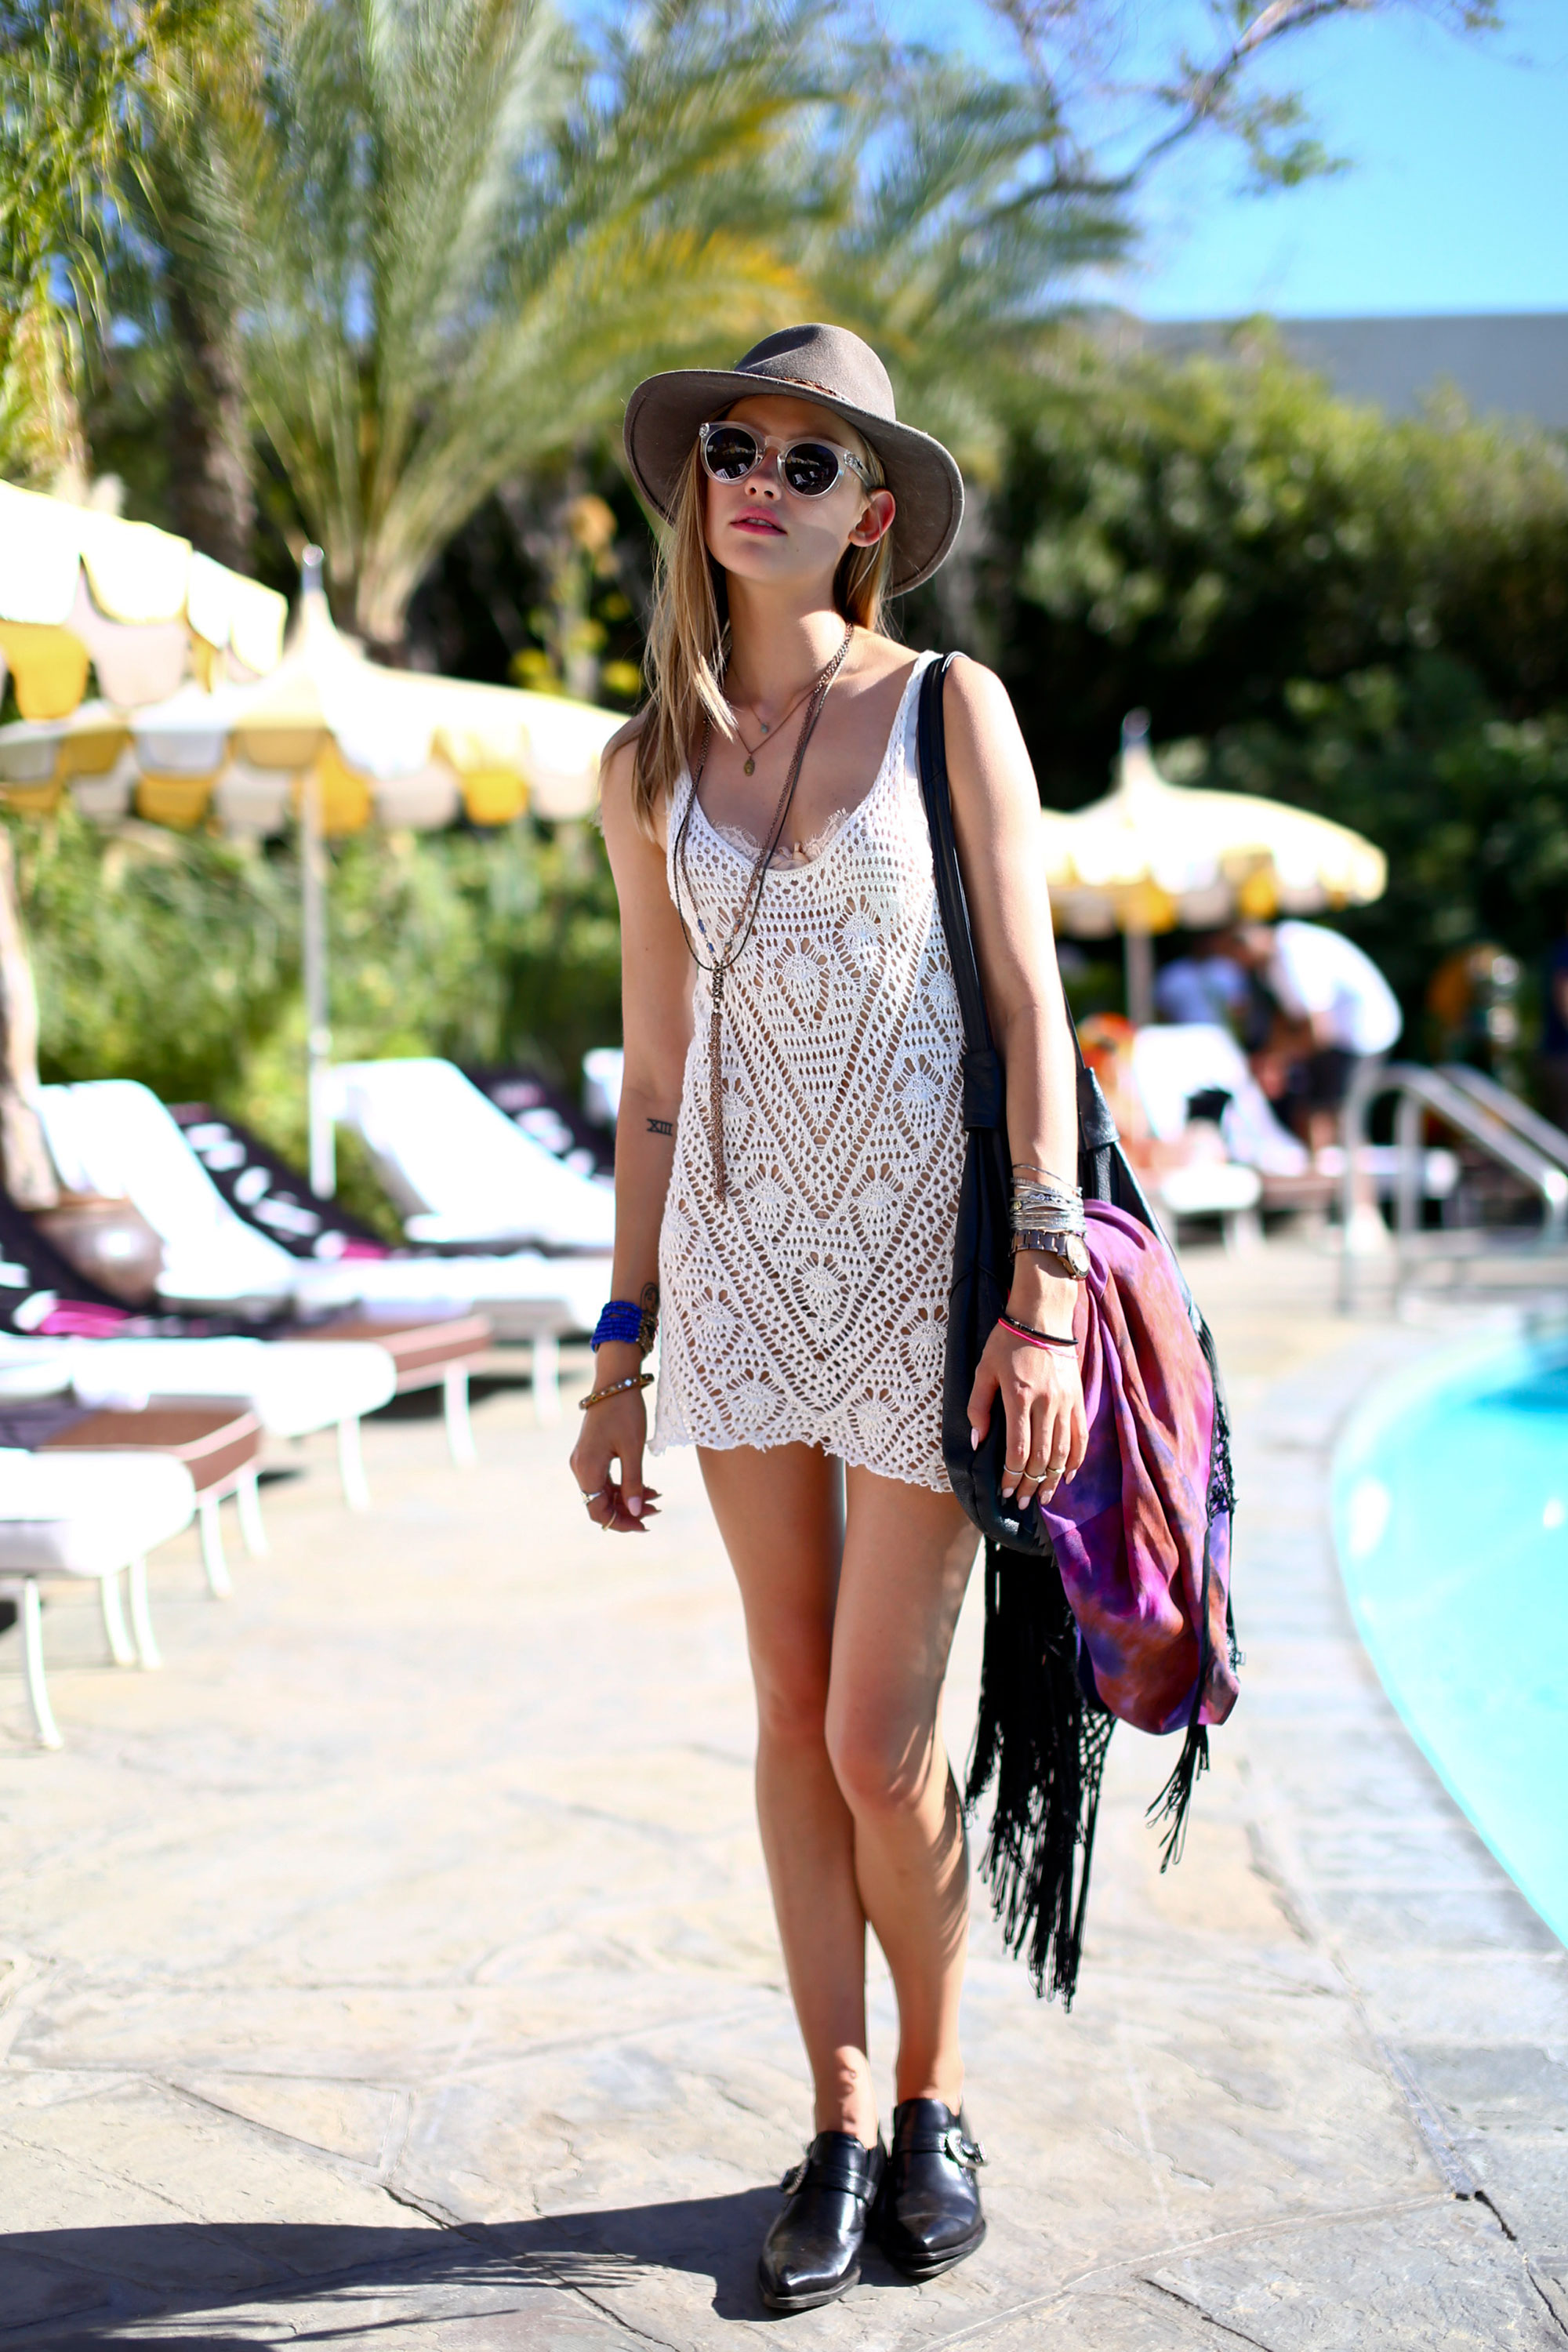 Coachella 2014, Love The Dress. Photography By Craig Arend For Harpers Bazaar